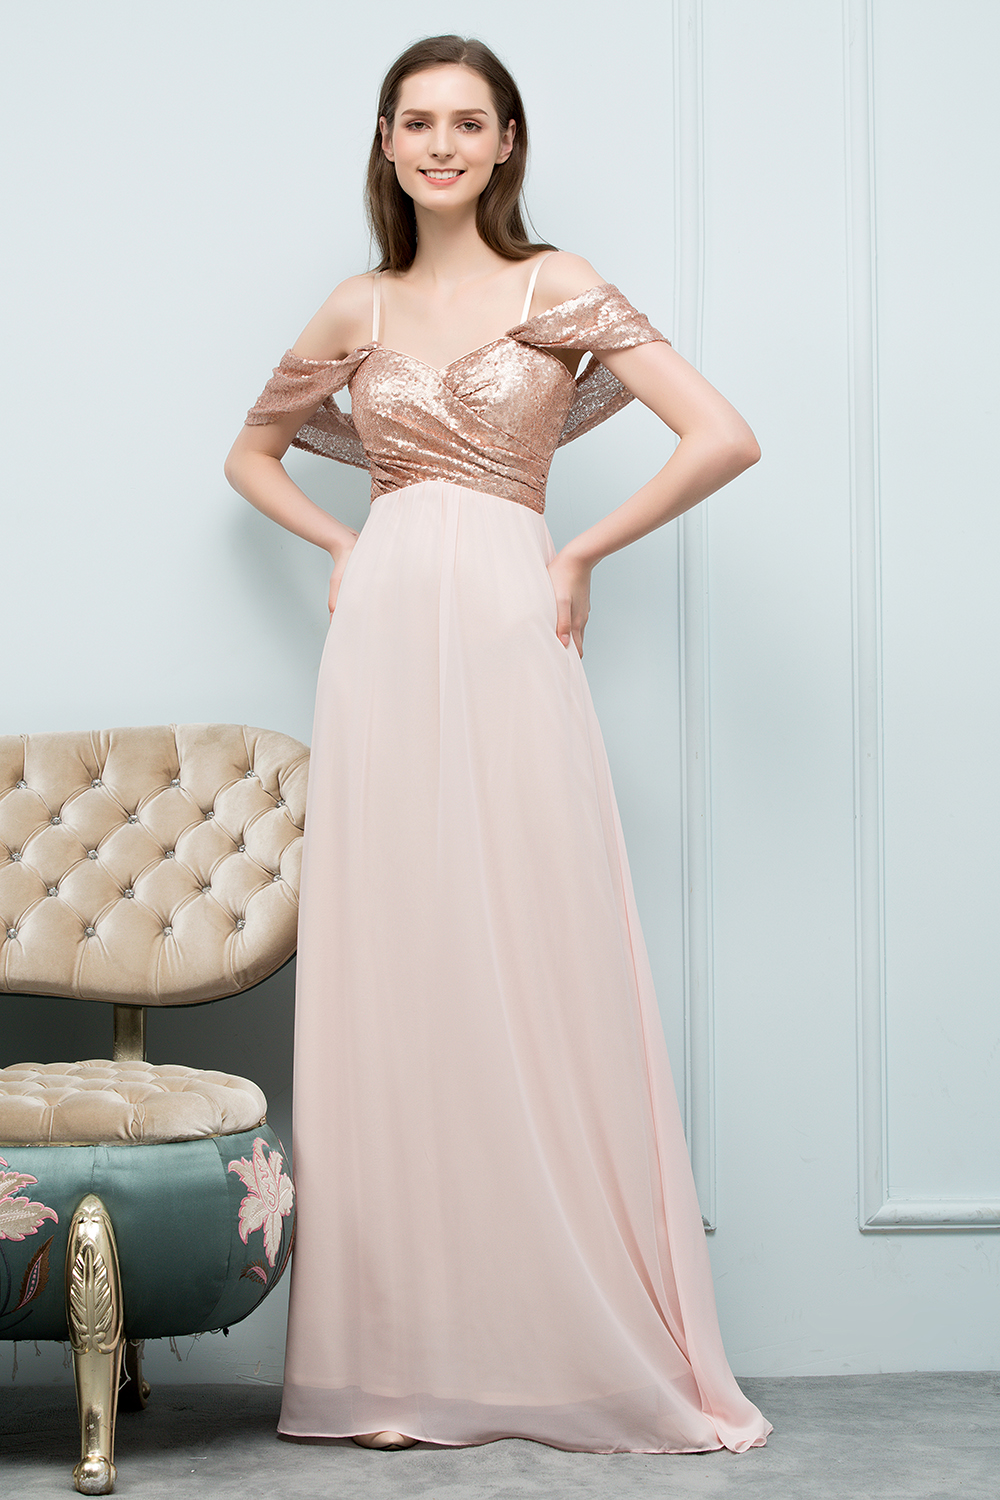 2018 sexy rose gold sequin chiffon bridesmaid dresses off shoulder 2018 sexy rose gold sequin chiffon bridesmaid dresses off shoulder long wedding party dresses robe demoiselle dhonneur in bridesmaid dresses from weddings ombrellifo Images